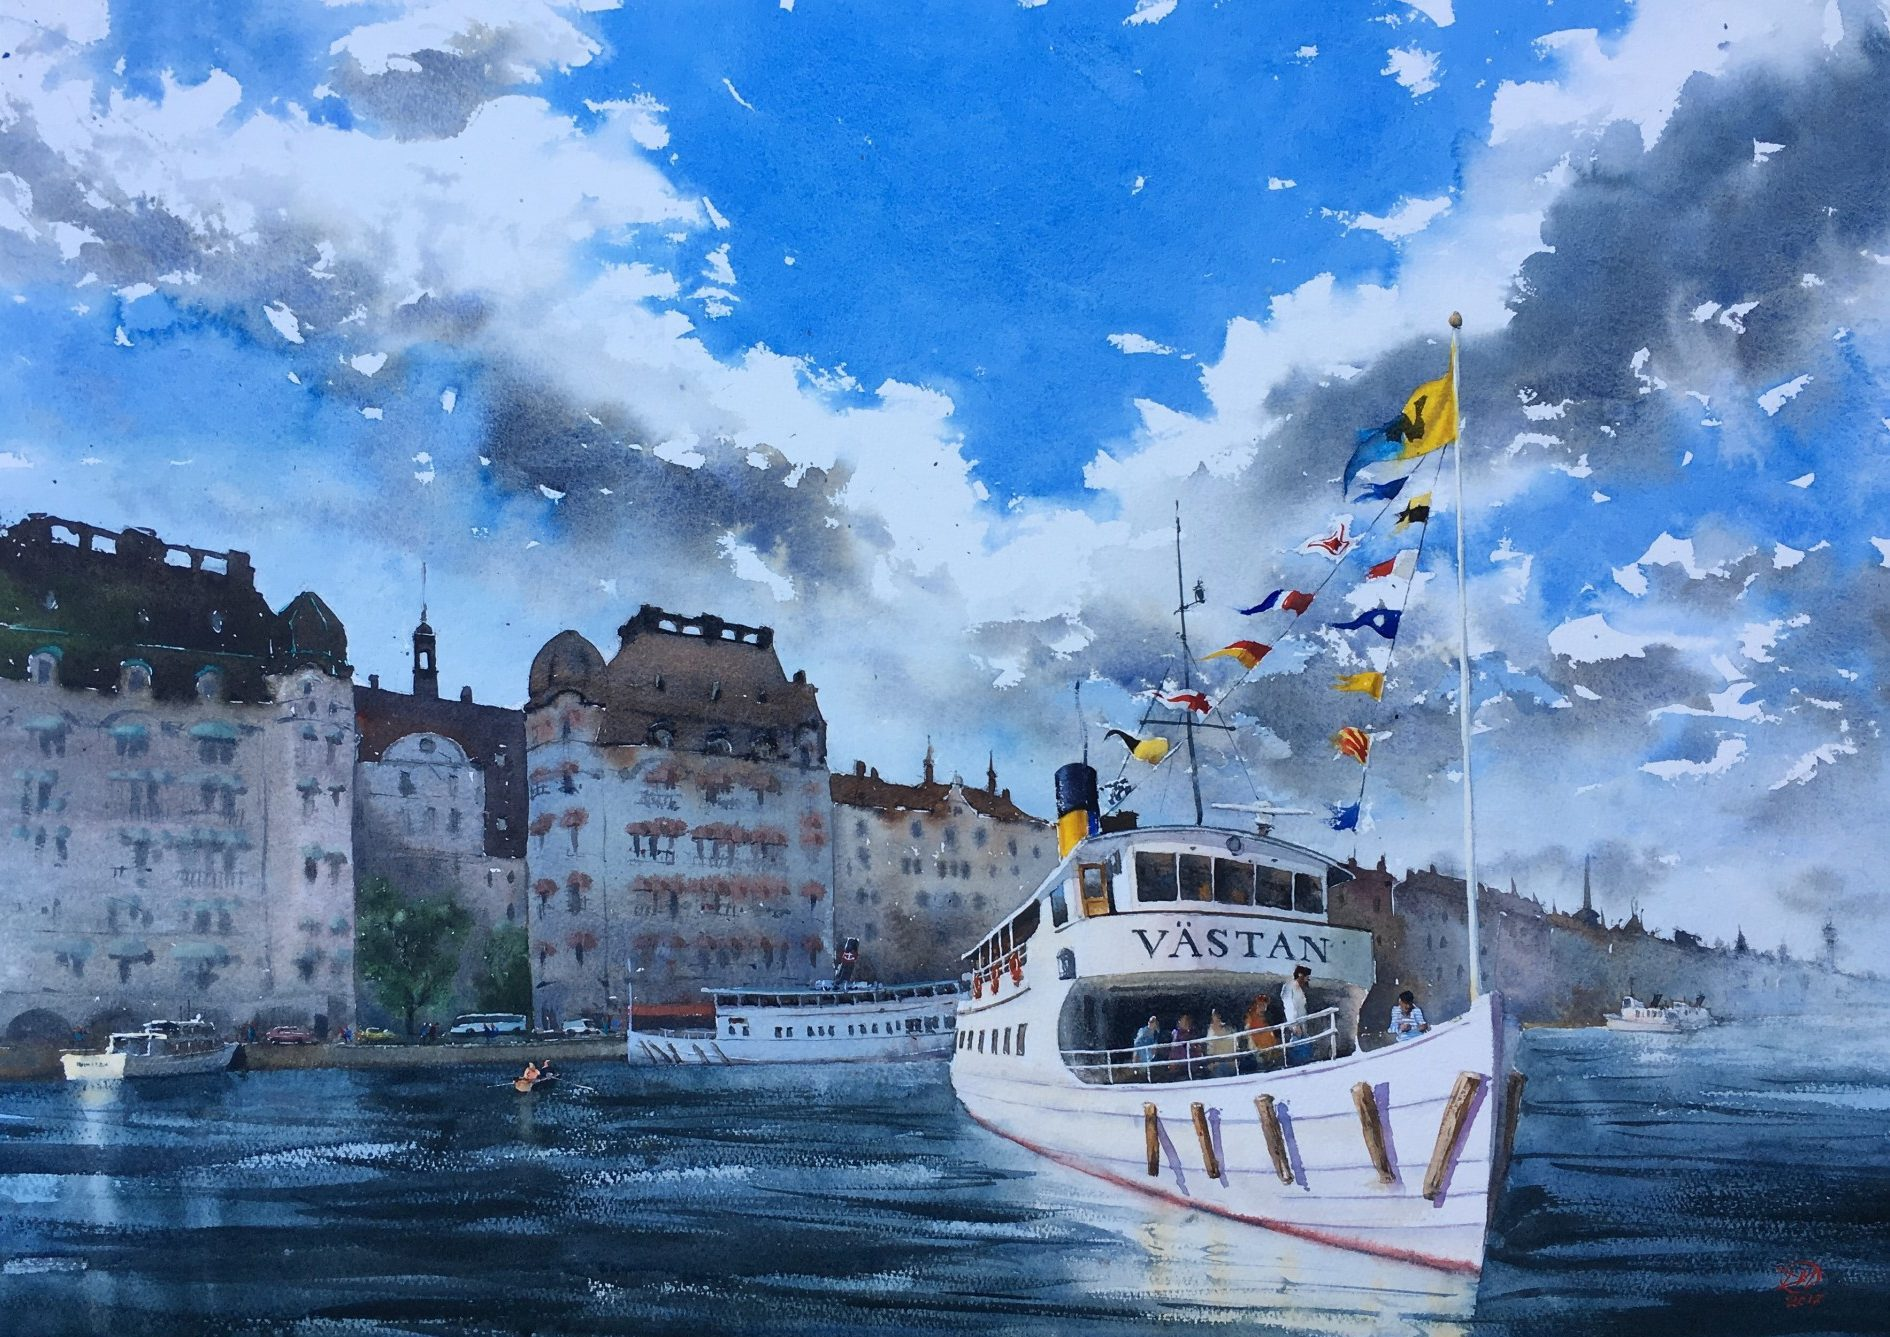 Watercolour of the ferry Västan at Nybrokajen, Stockholm